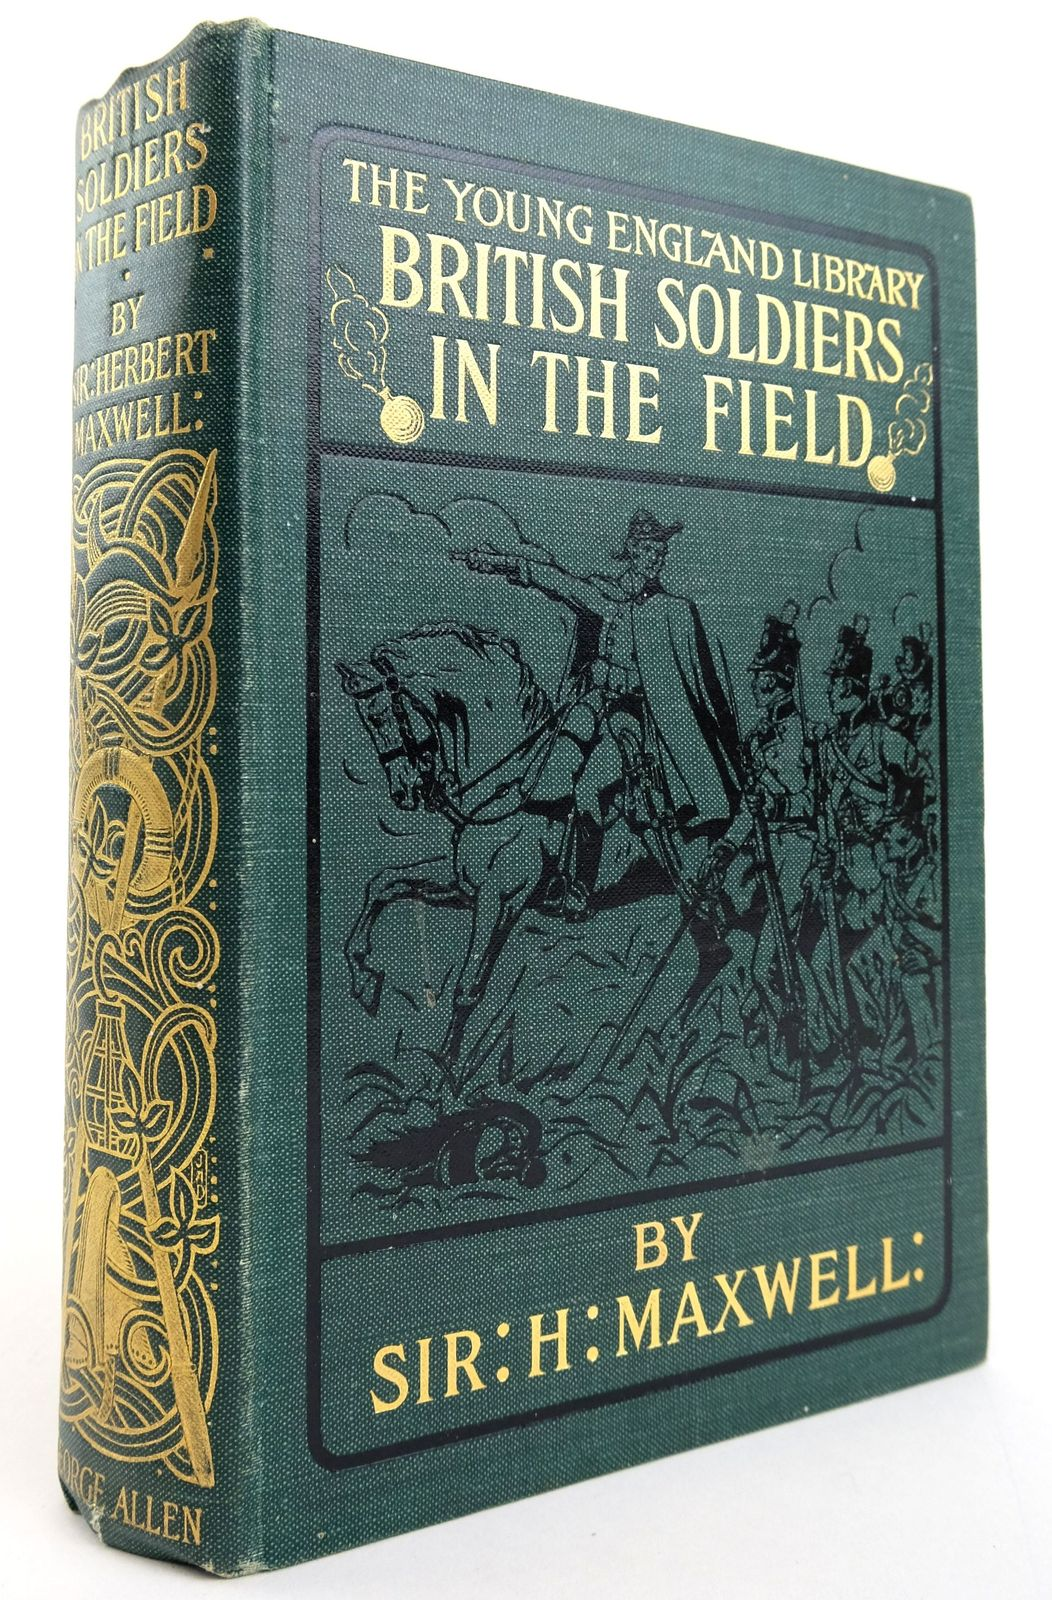 Photo of BRITISH SOLDIERS IN THE FIELD (THE YOUNG ENGLAND LIBRARY) written by Maxwell, Herbert published by George Allen (STOCK CODE: 1820018)  for sale by Stella & Rose's Books